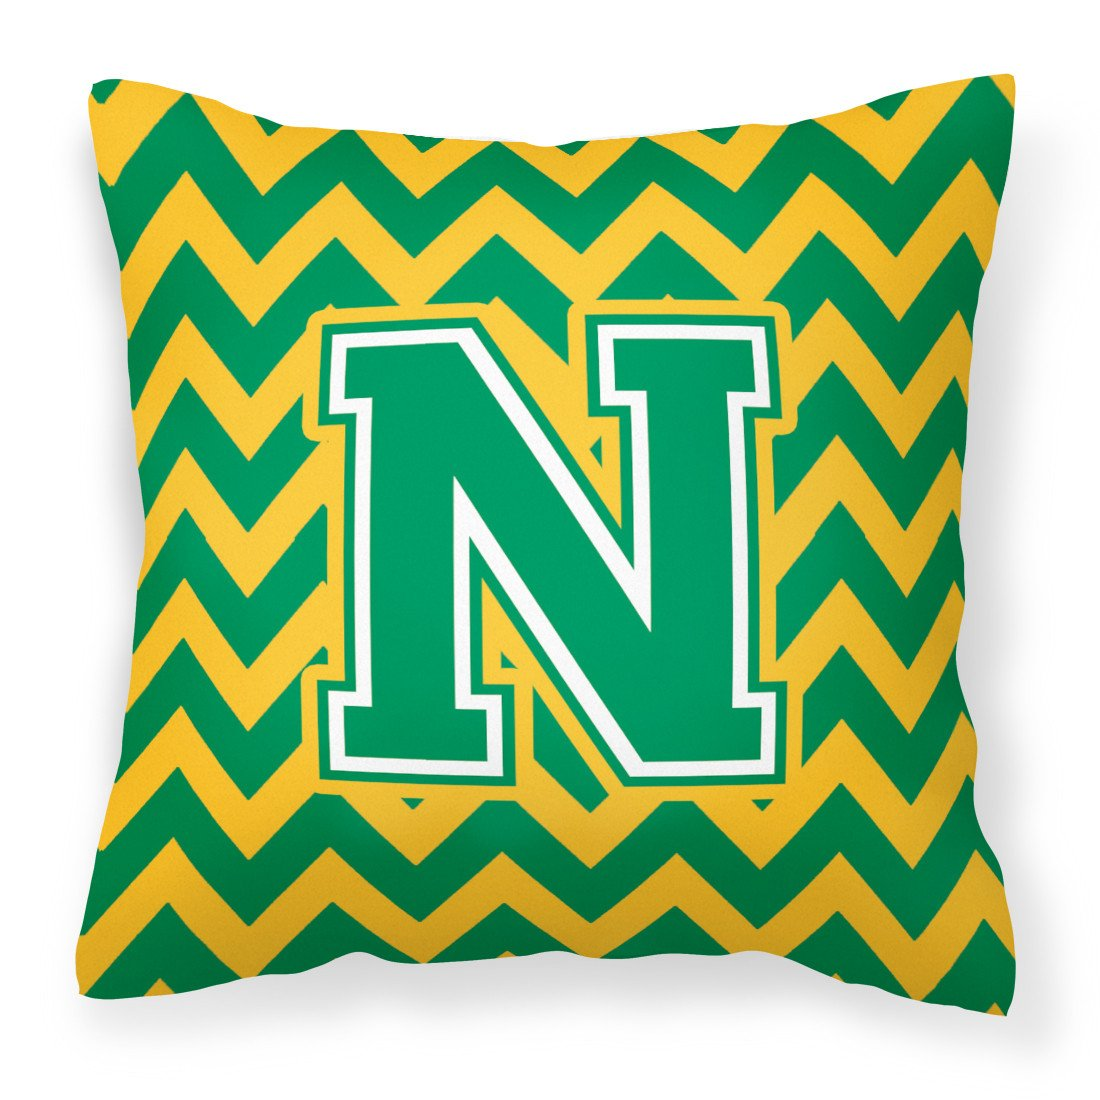 Letter N Chevron Green and Gold Fabric Decorative Pillow CJ1059-NPW1414 by Caroline's Treasures